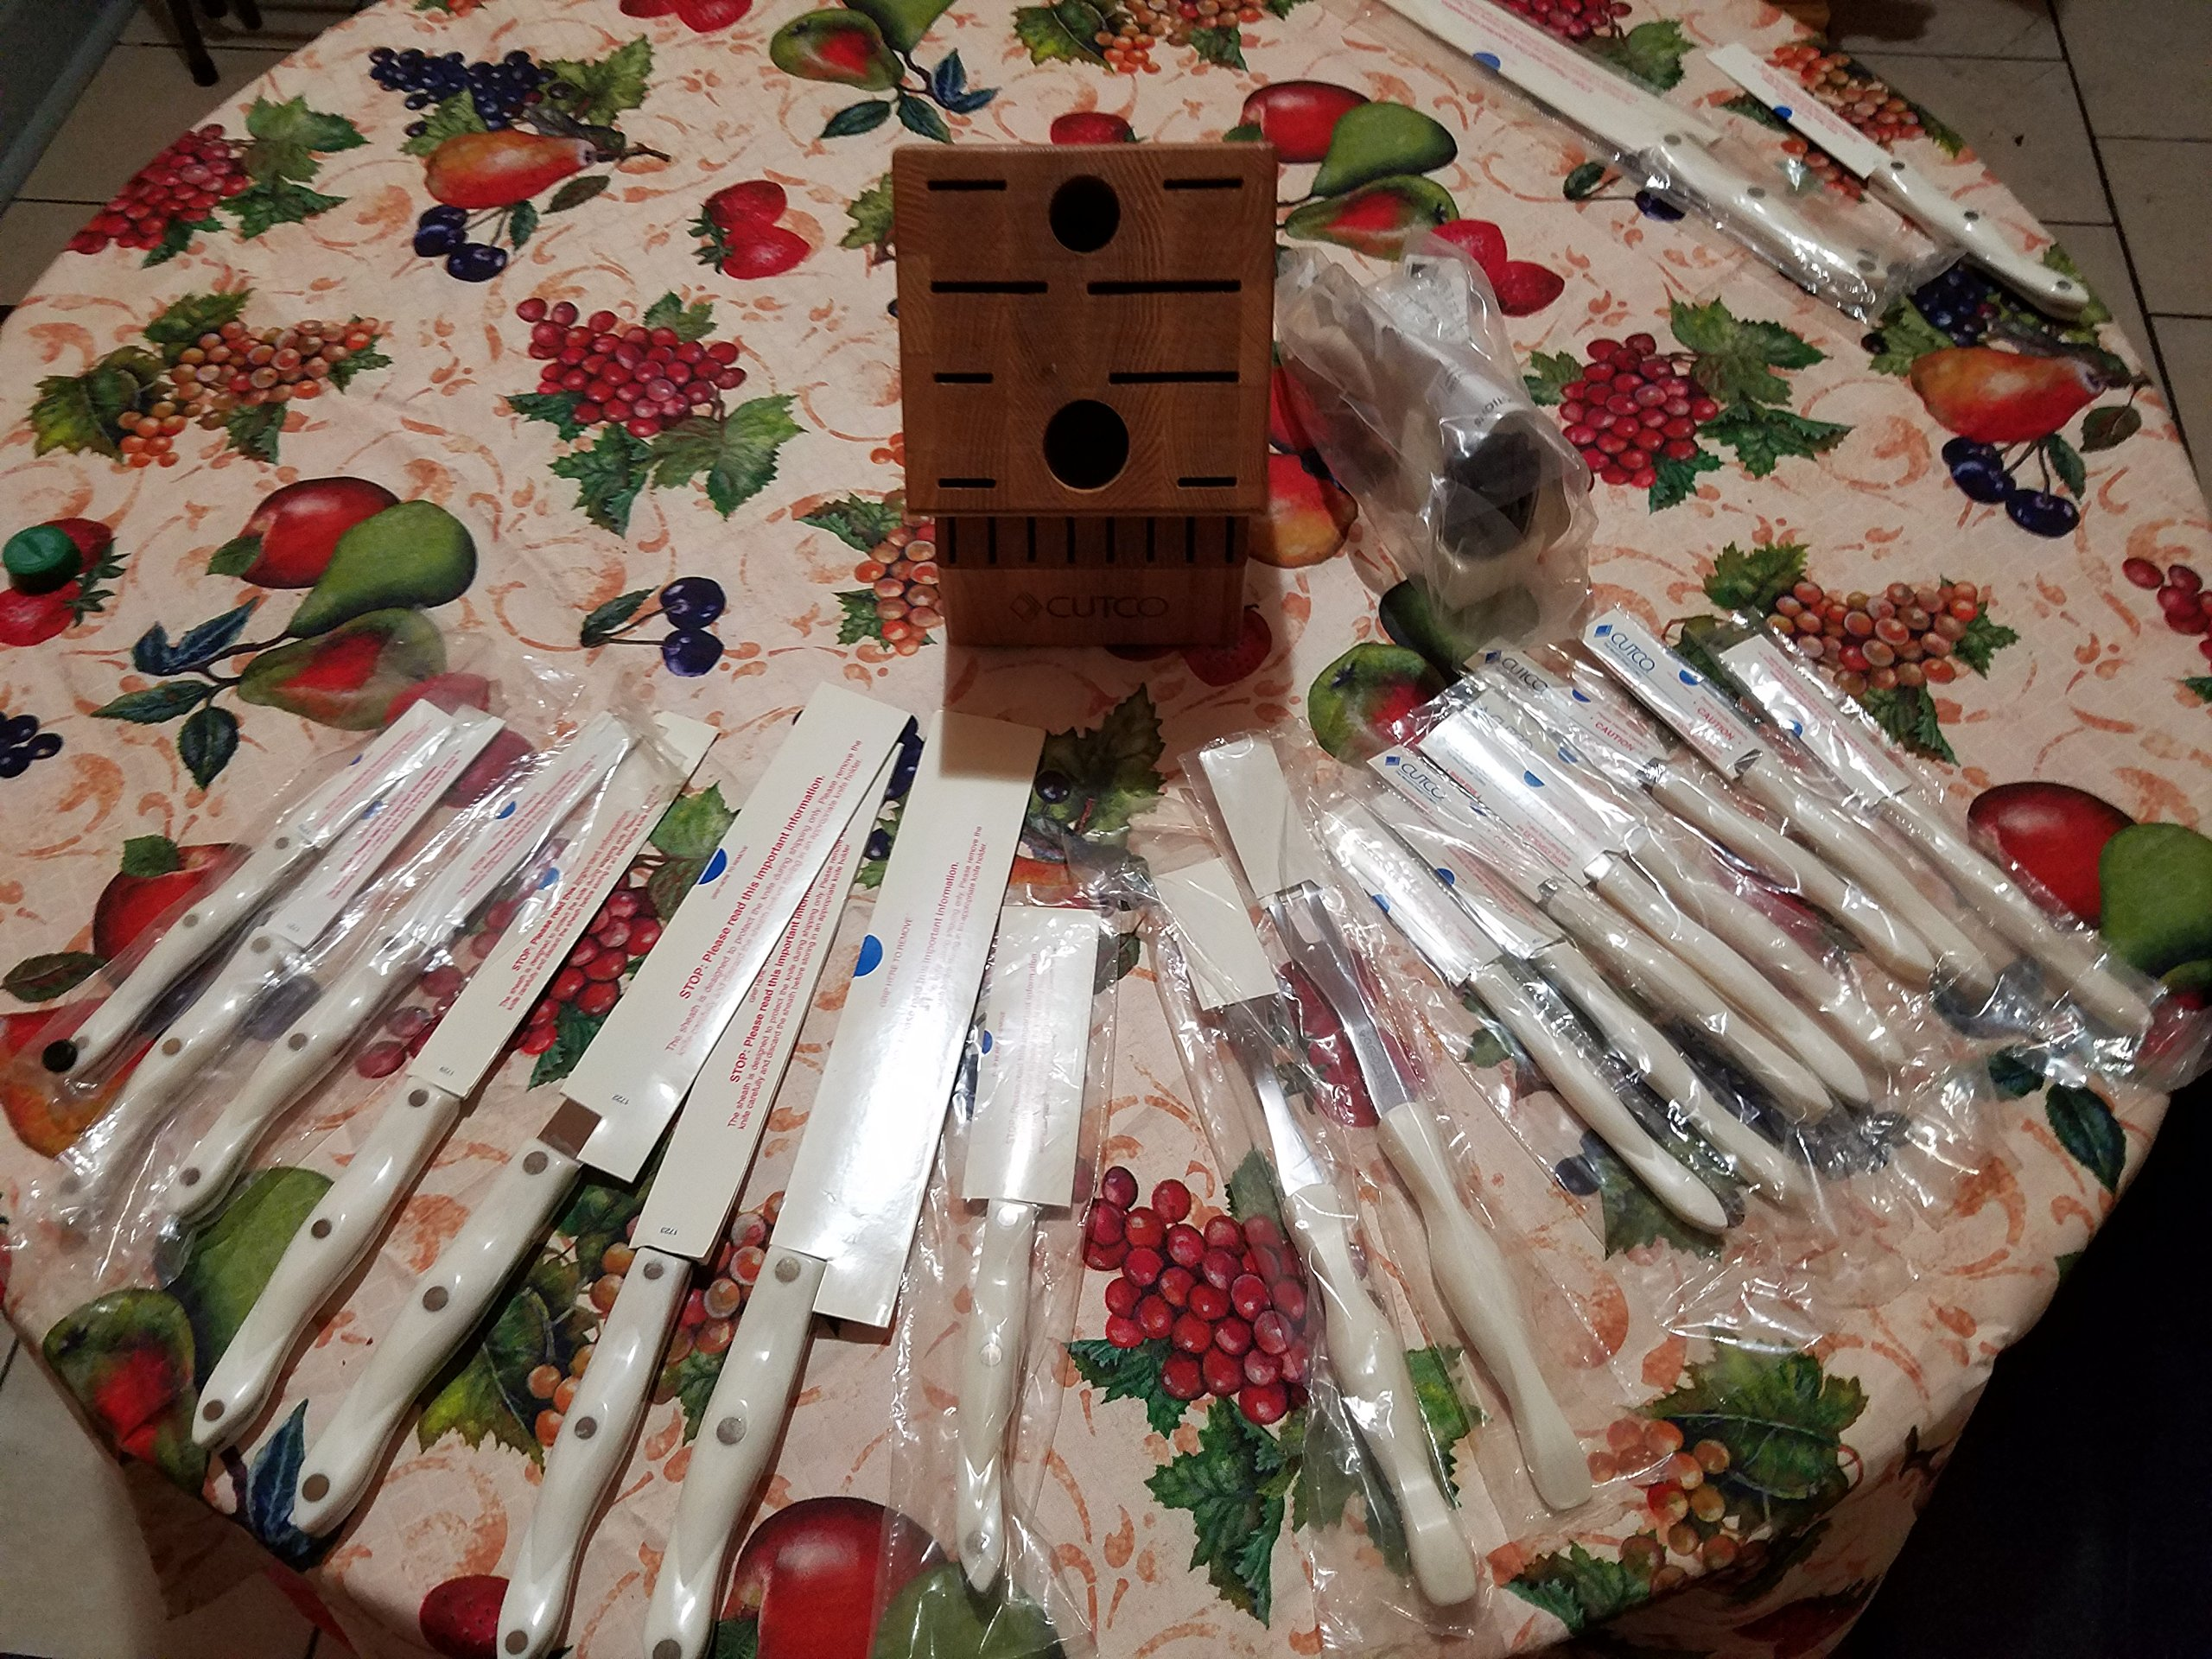 CUTCO Model 2018 White (pearl) Homemaker+8 Set............18 High Carbon Stainless knives & forks in factory-sealed plastic bags............#1748 Honey Oak knife block, #82 Sharpener, and #125 10'' x 13'' Poly Prep cutting board also included.